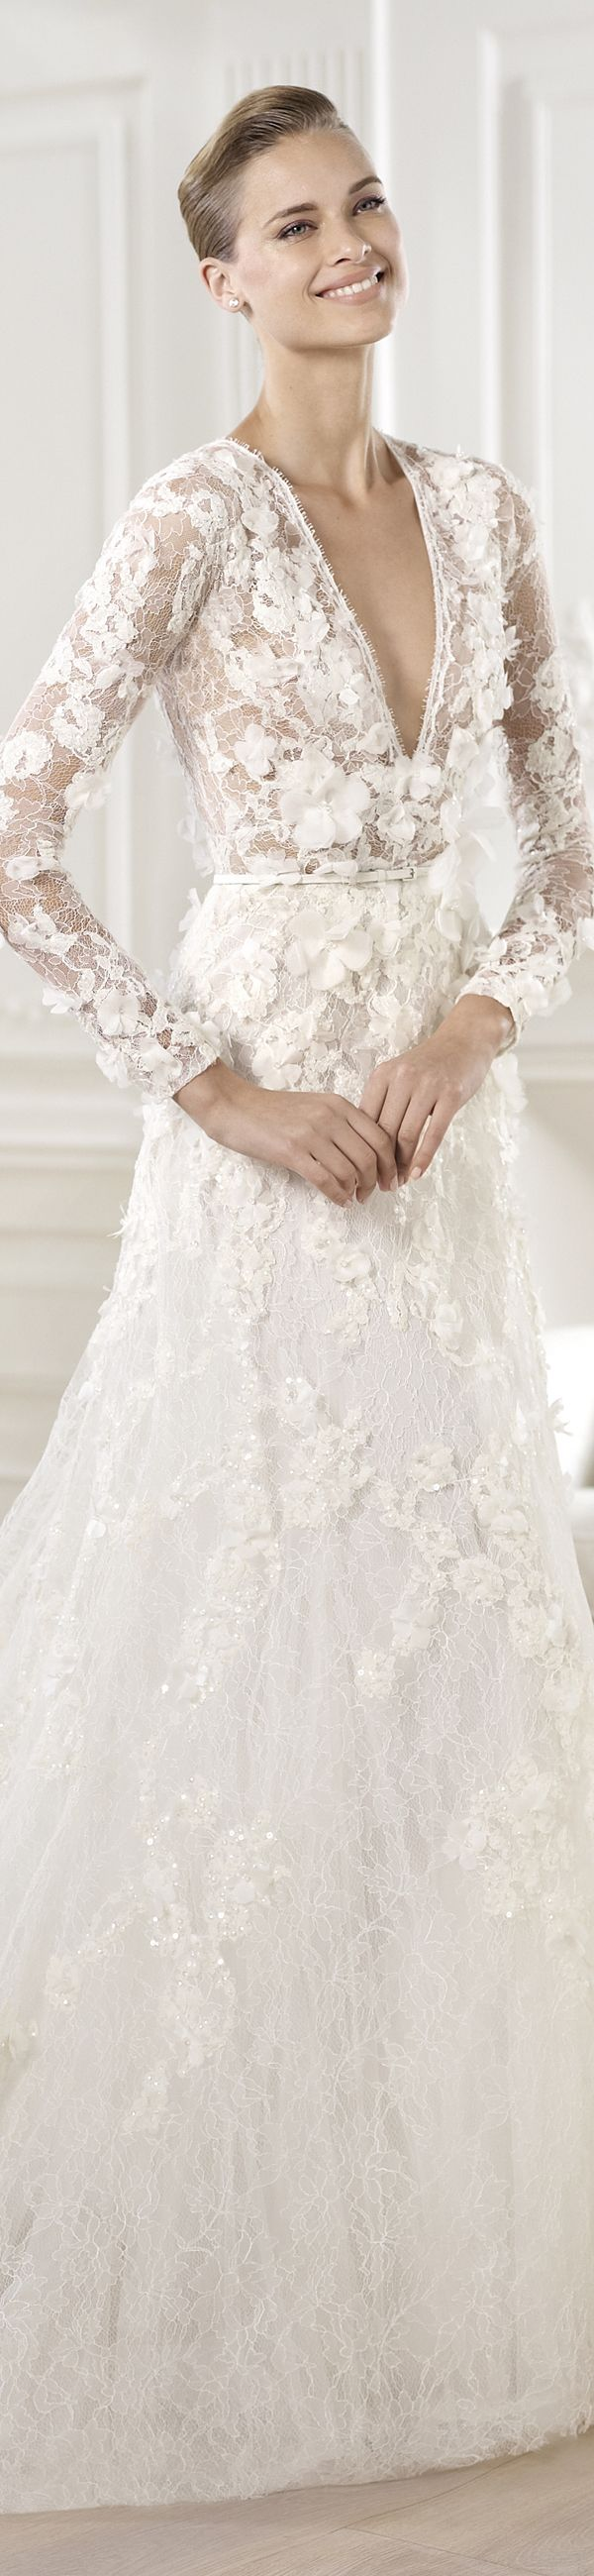 Chantilly lace dress with crystal gemstone embroidery and organza